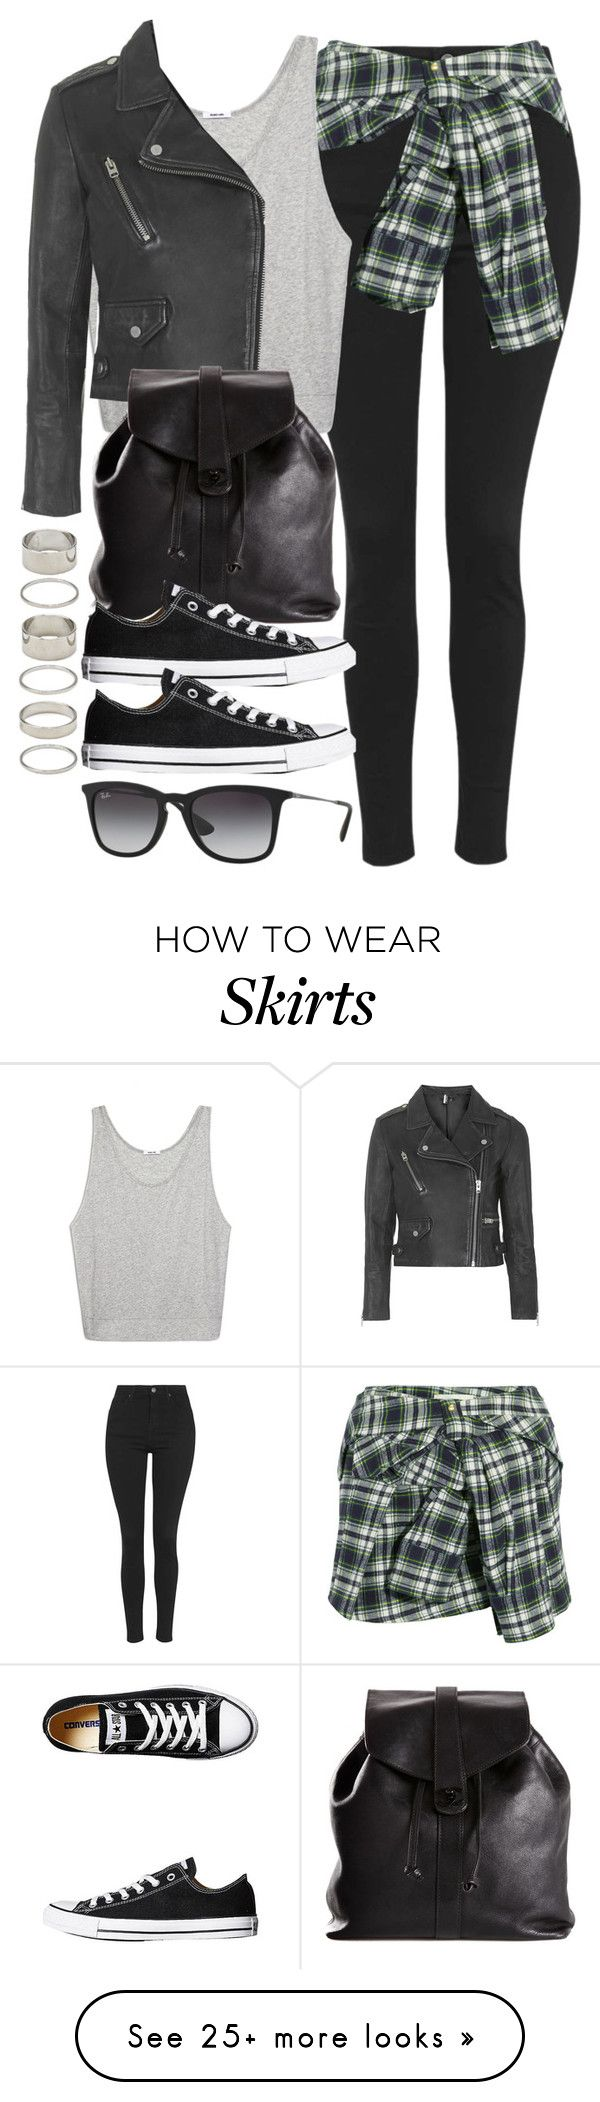 """Style #9676"" by vany-alvarado on Polyvore featuring мода, Topshop, Faith Connexion, Helmut Lang, Chanel, Converse, Ray-Ban и Forever 21"